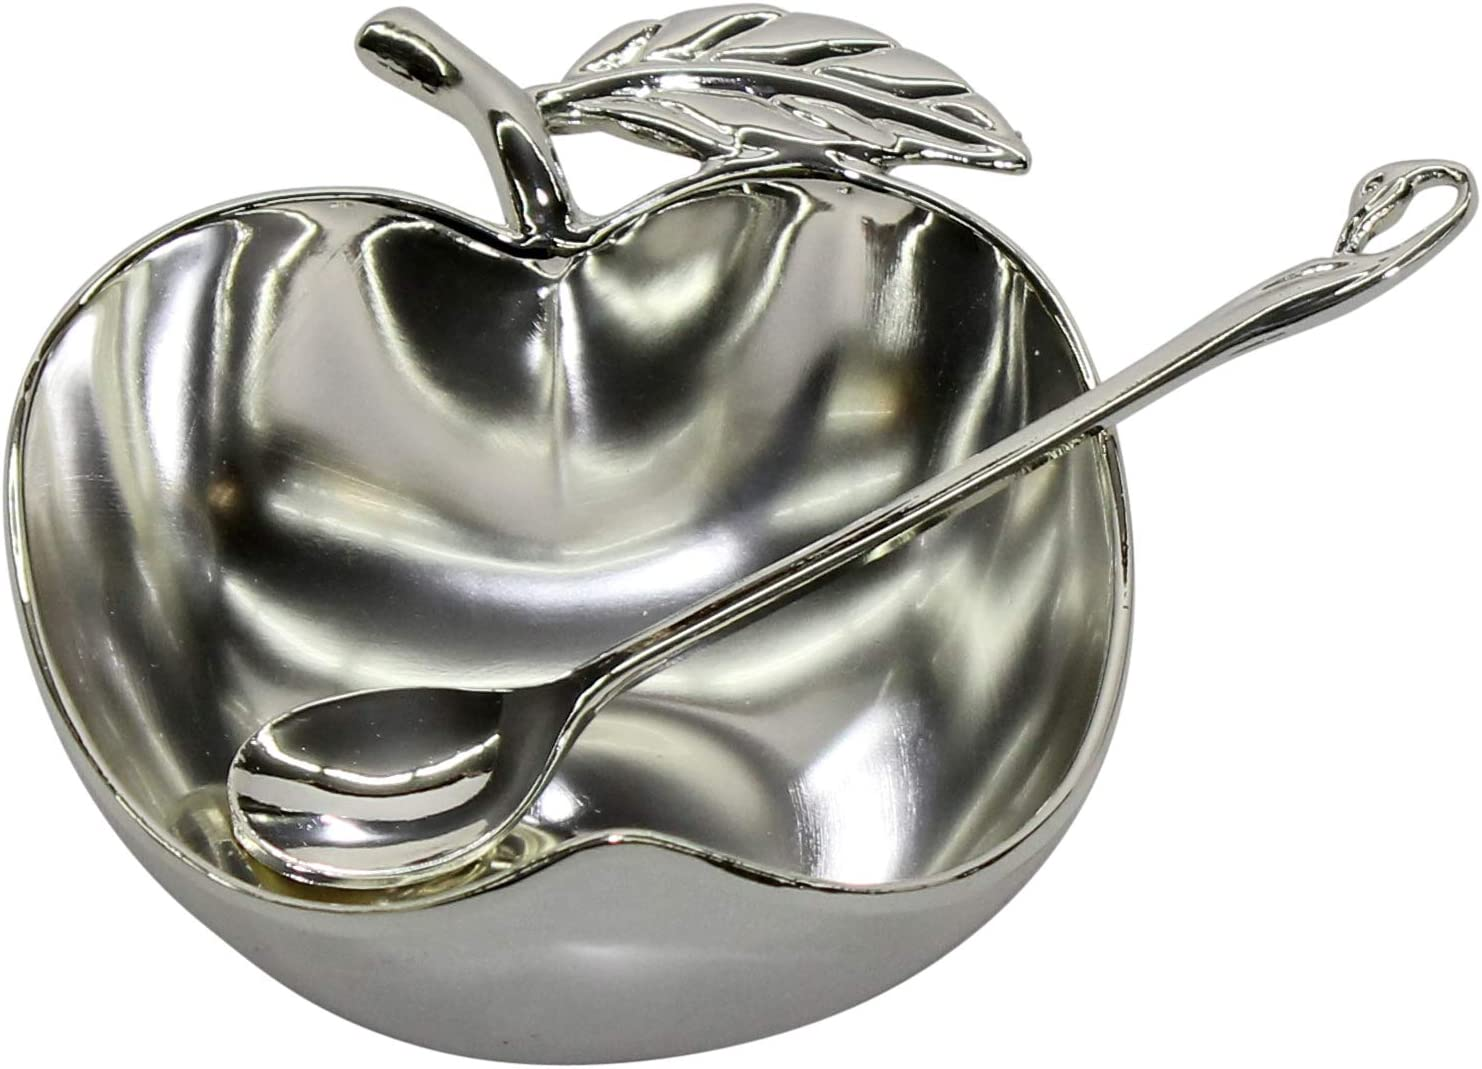 Majestic Giftware Apple Shaped Silver Plated with Spoon 4